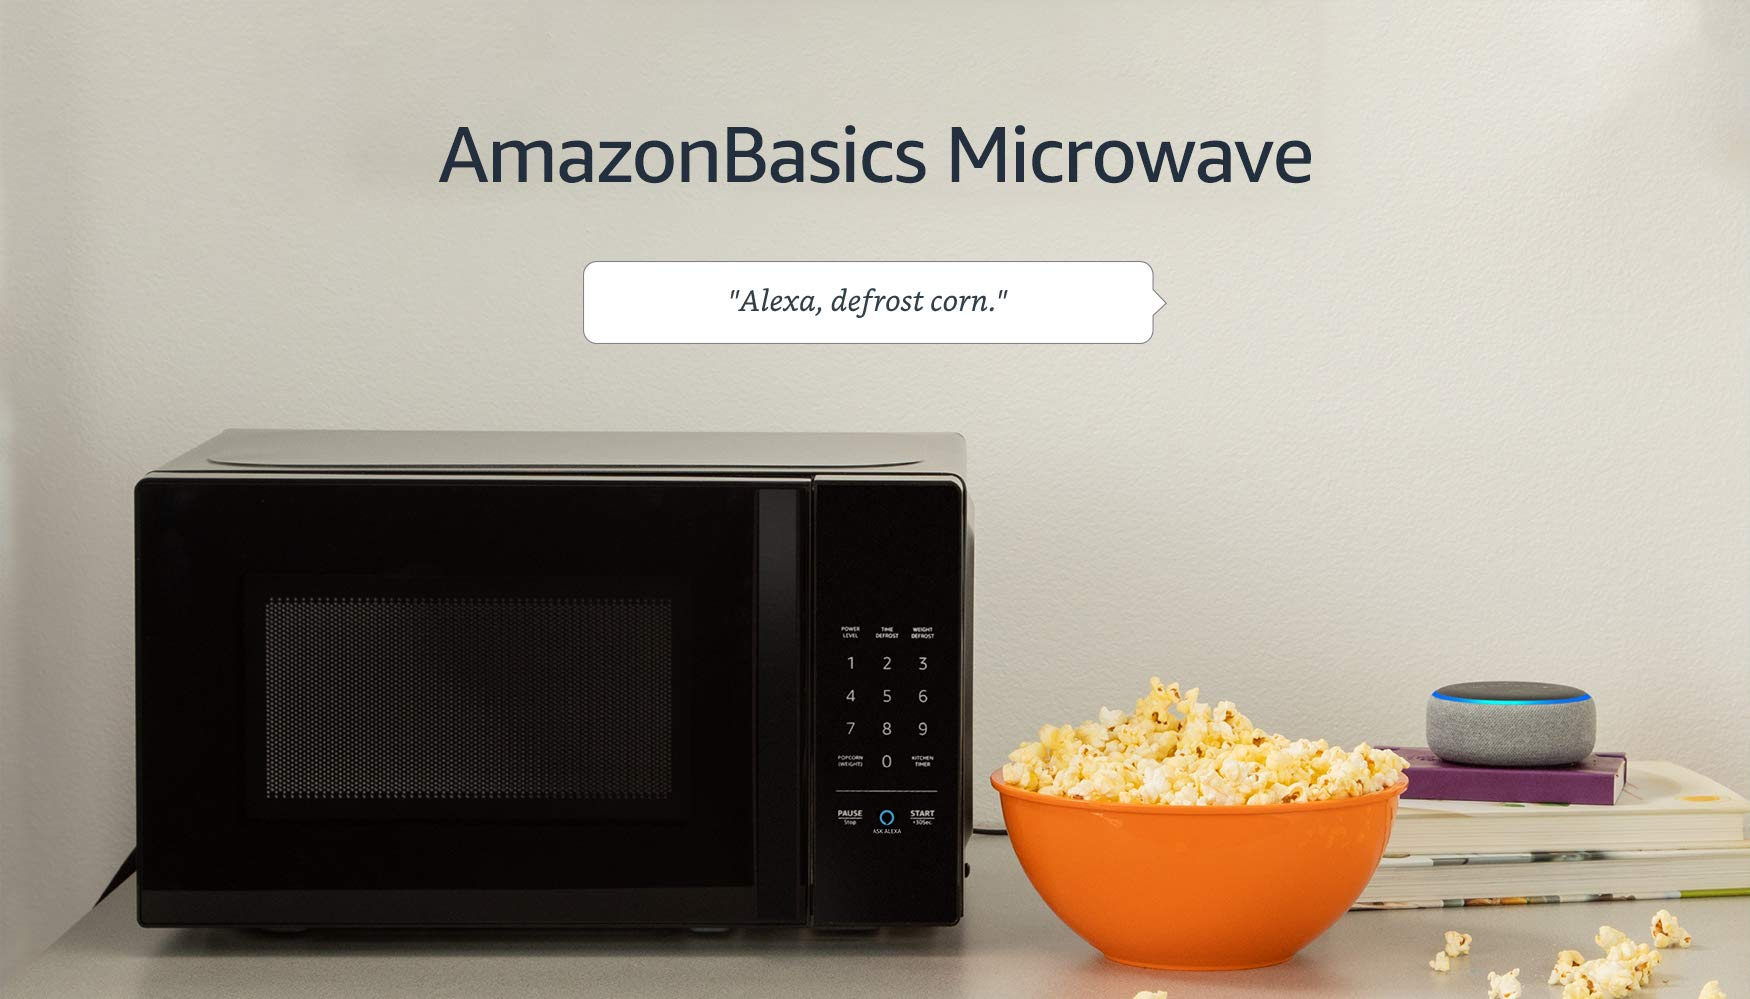 Amazon Basics Microwave bundle with Echo Dot (3rd Gen) - Charcoal 7 Now it's easier to defrost vegetables, make popcorn, cook potatoes, and reheat rice. With an Echo device (not included), quick-cook voice presets and a simplified keypad let you just ask Alexa to start microwaving. Automatically reorder popcorn when you run low and save 10% on popcorn orders-enabled by Amazon Dash Replenishment technology Compact size saves counter space, plus 10 power levels, a kitchen timer, a child lock, and a turntable.